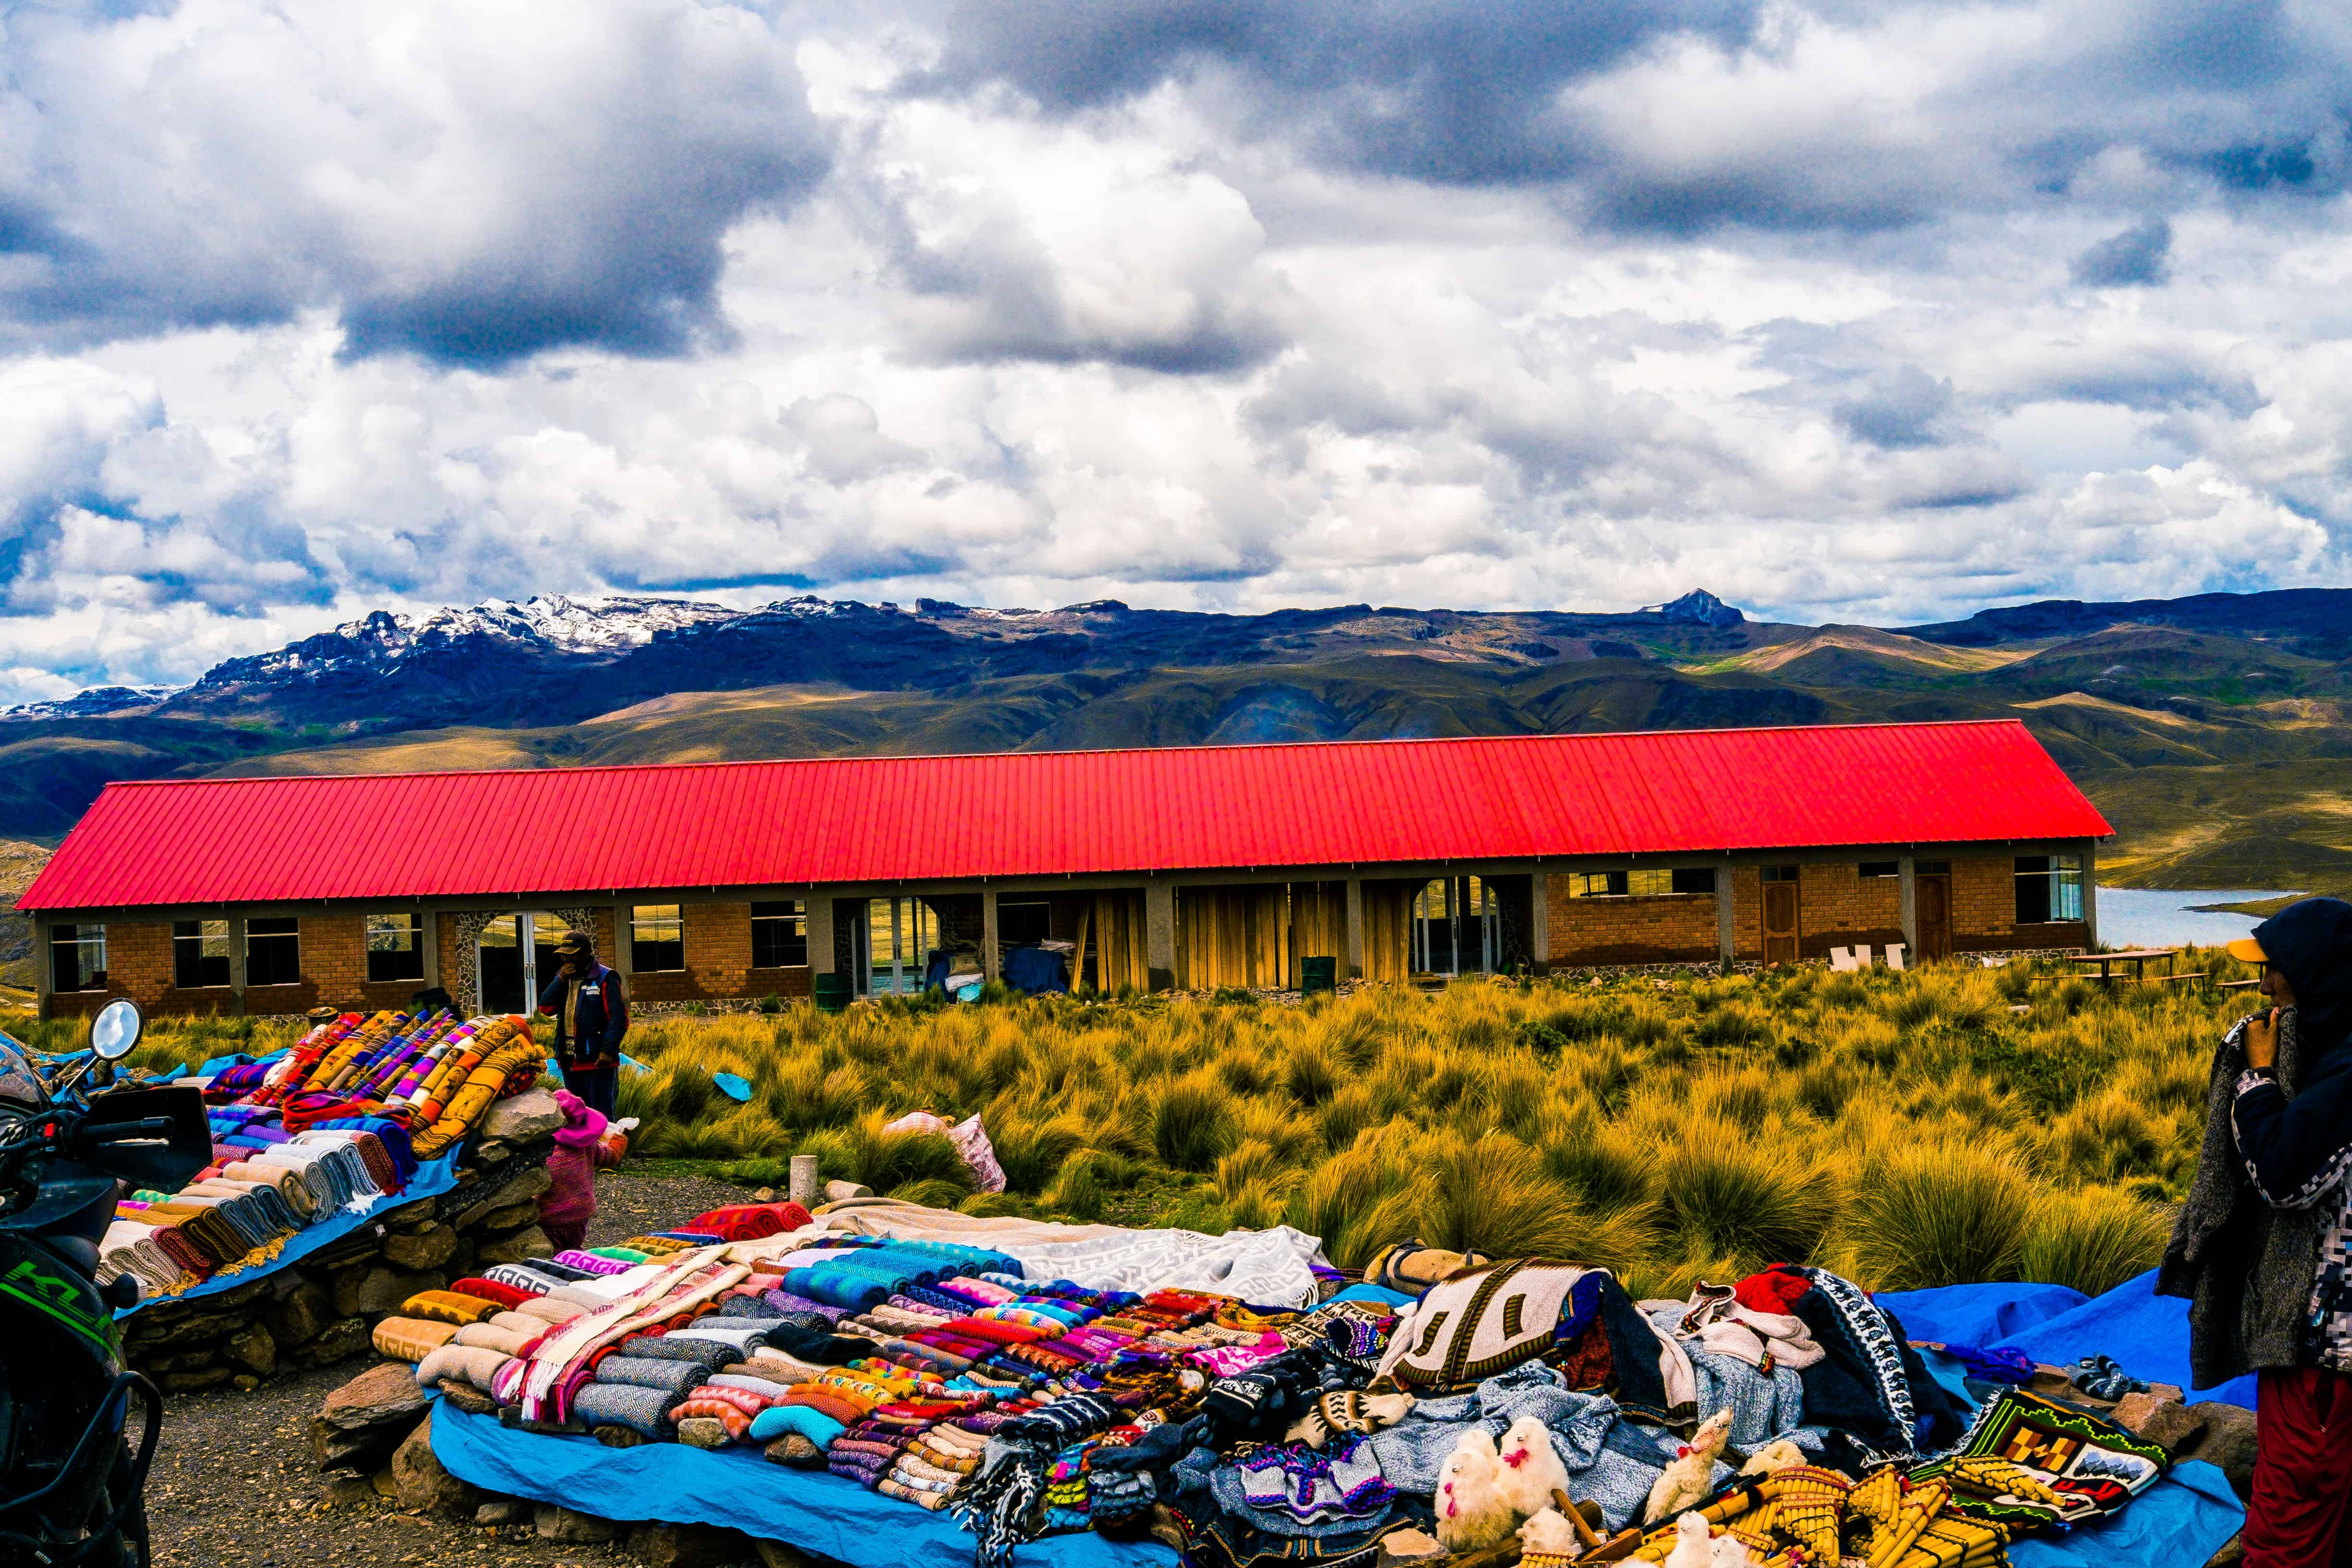 buying local fabrics in the andes mountains in peru while following the 2019 dakar rally